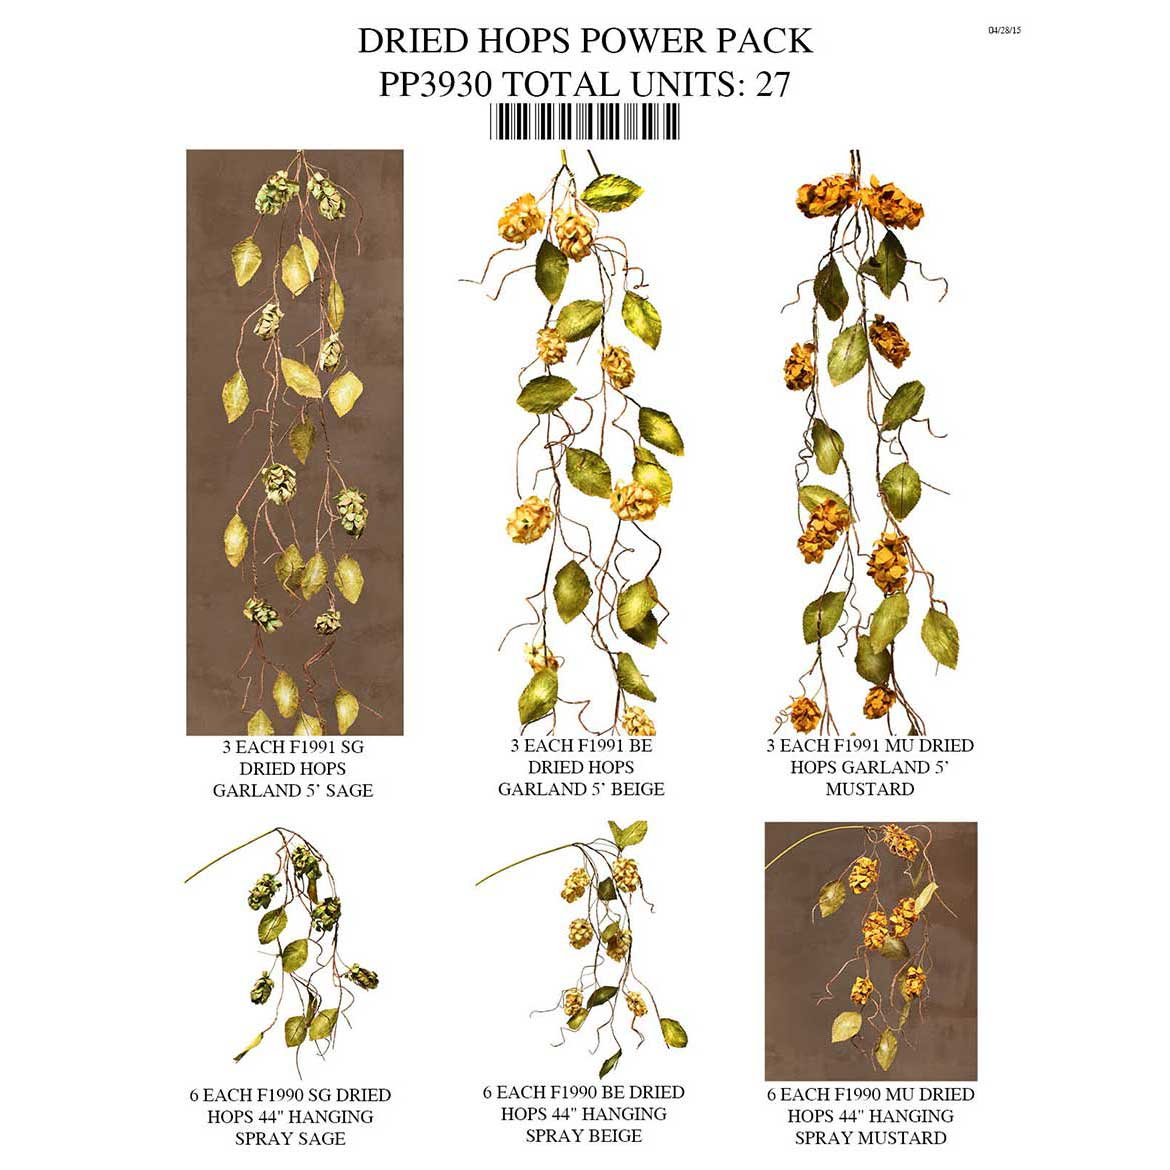 DRIED HOPS POWER PACK 27 UNITS